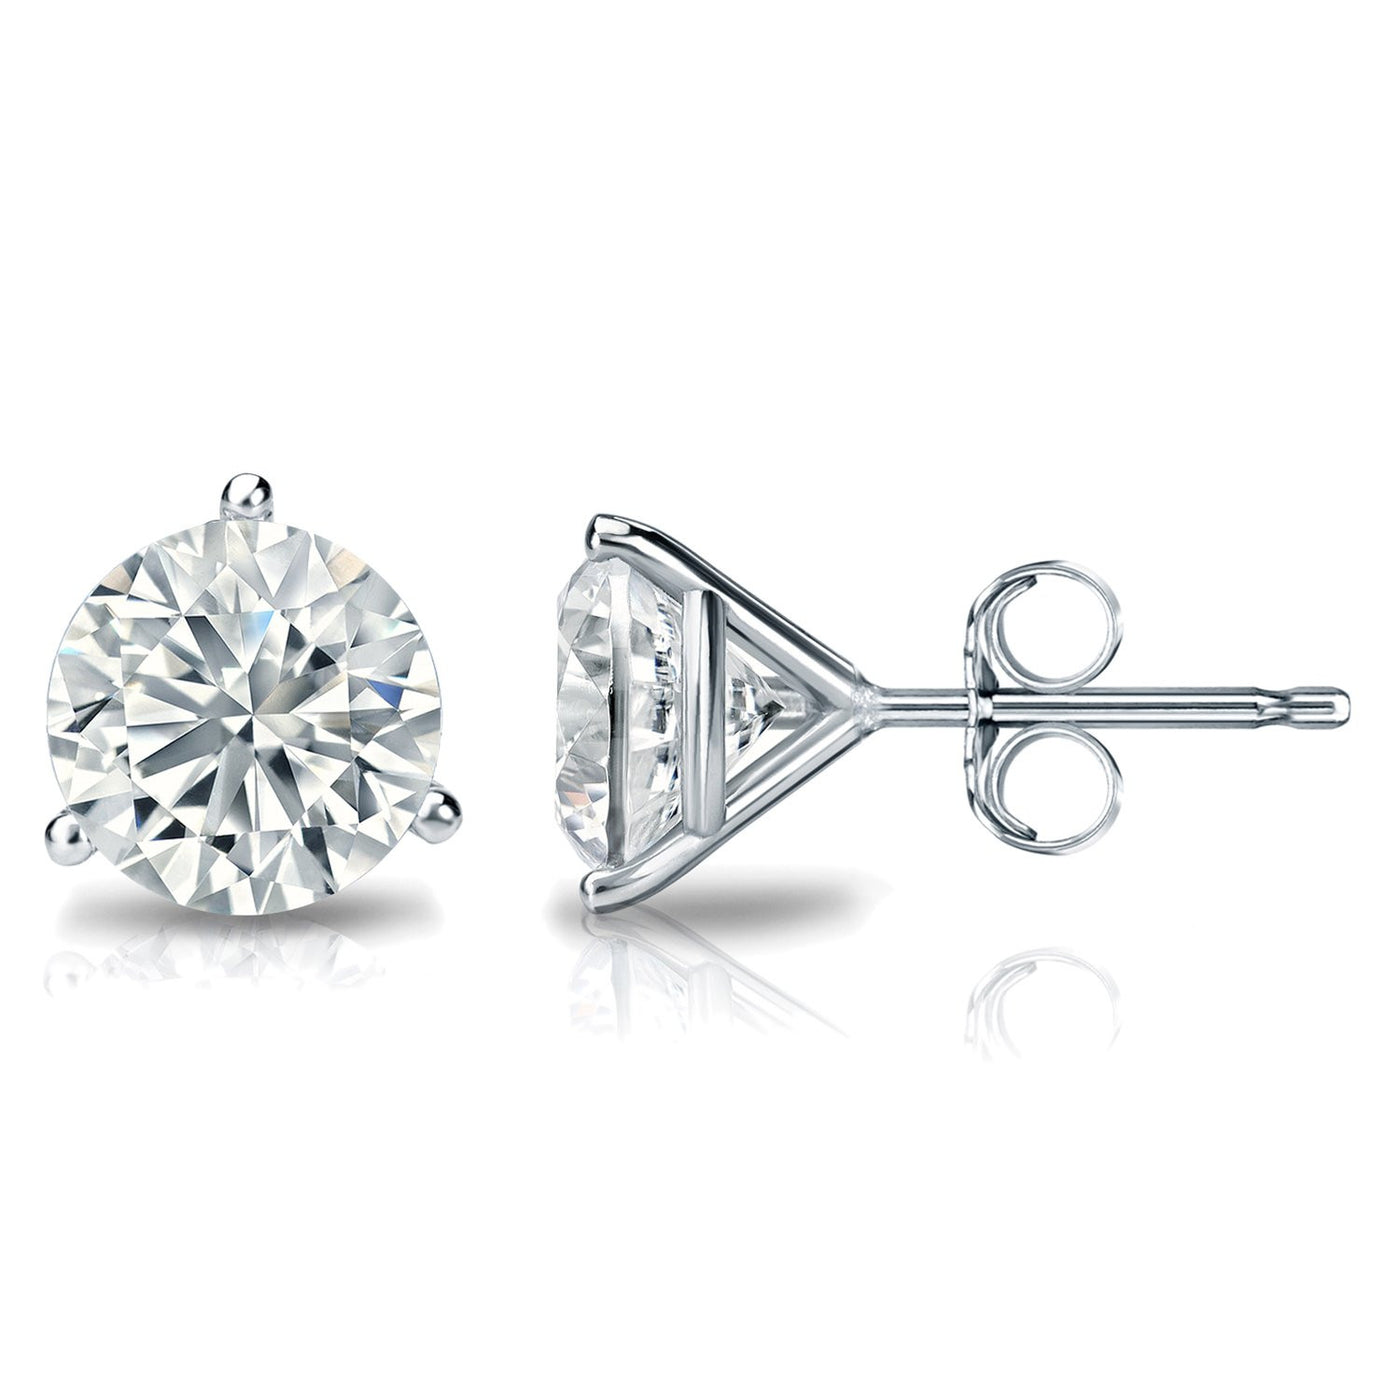 1 Carat Round 14k White Gold 3 Prong Martini Set Diamond Solitaire Stud Earrings (Premium Quality)